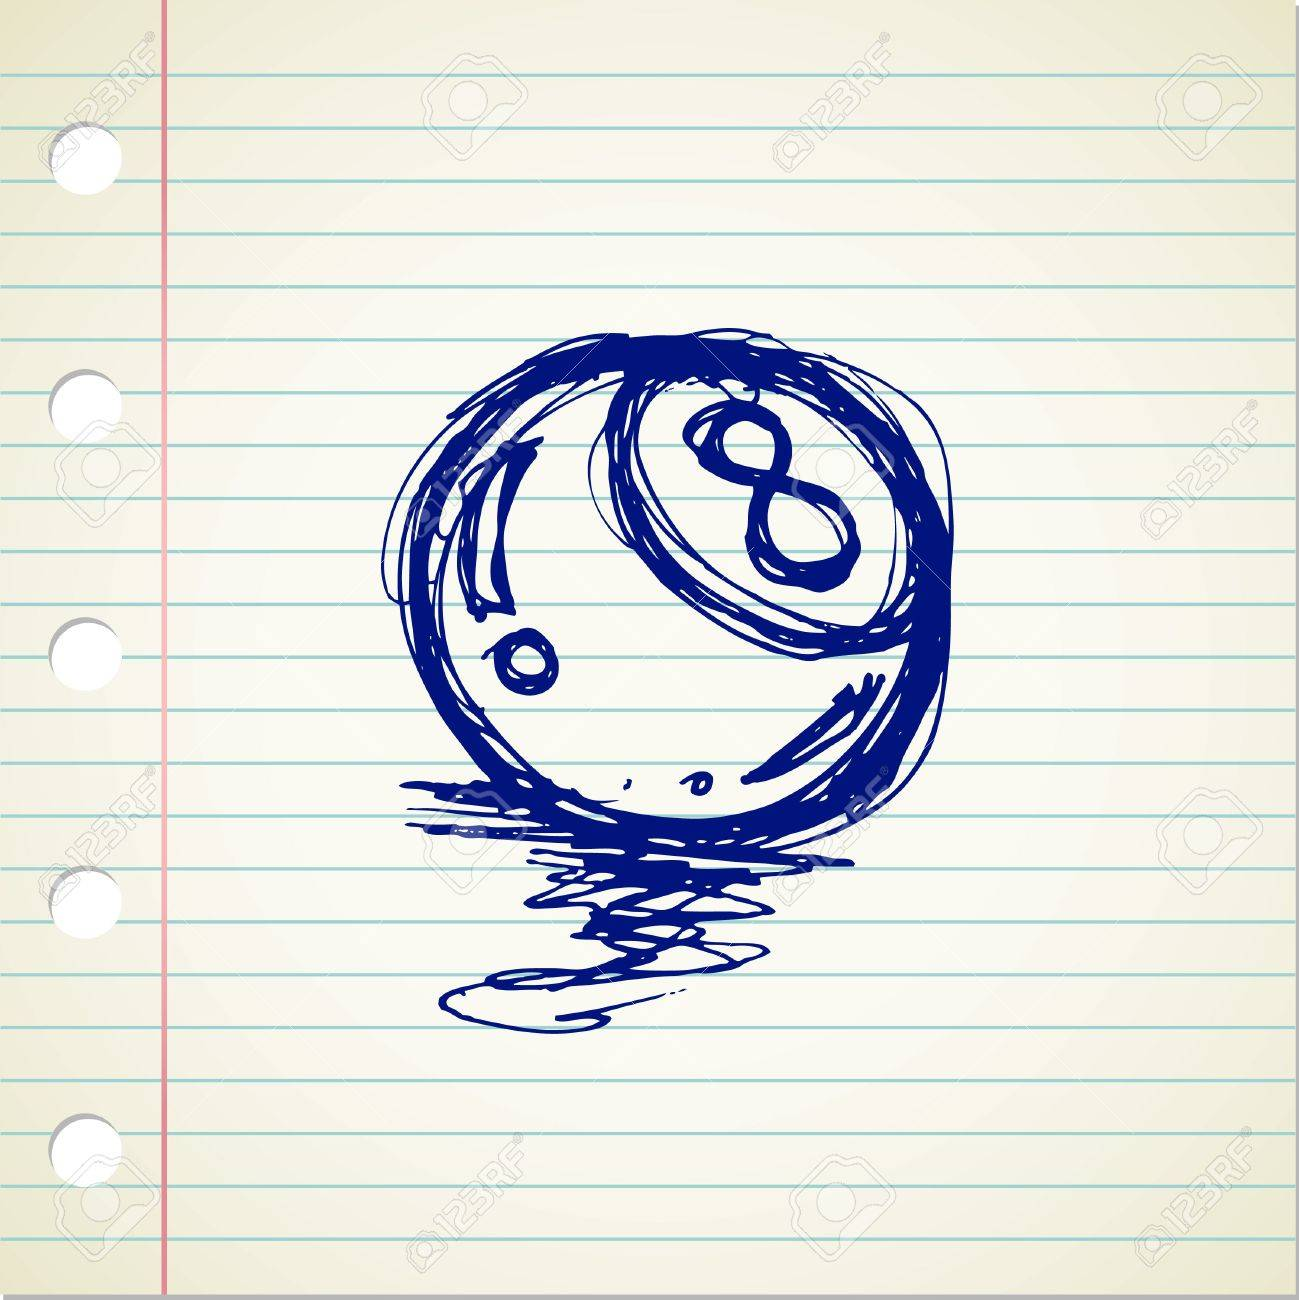 1299x1300 8 Ball Doodle Royalty Free Cliparts, Vectors, And Stock